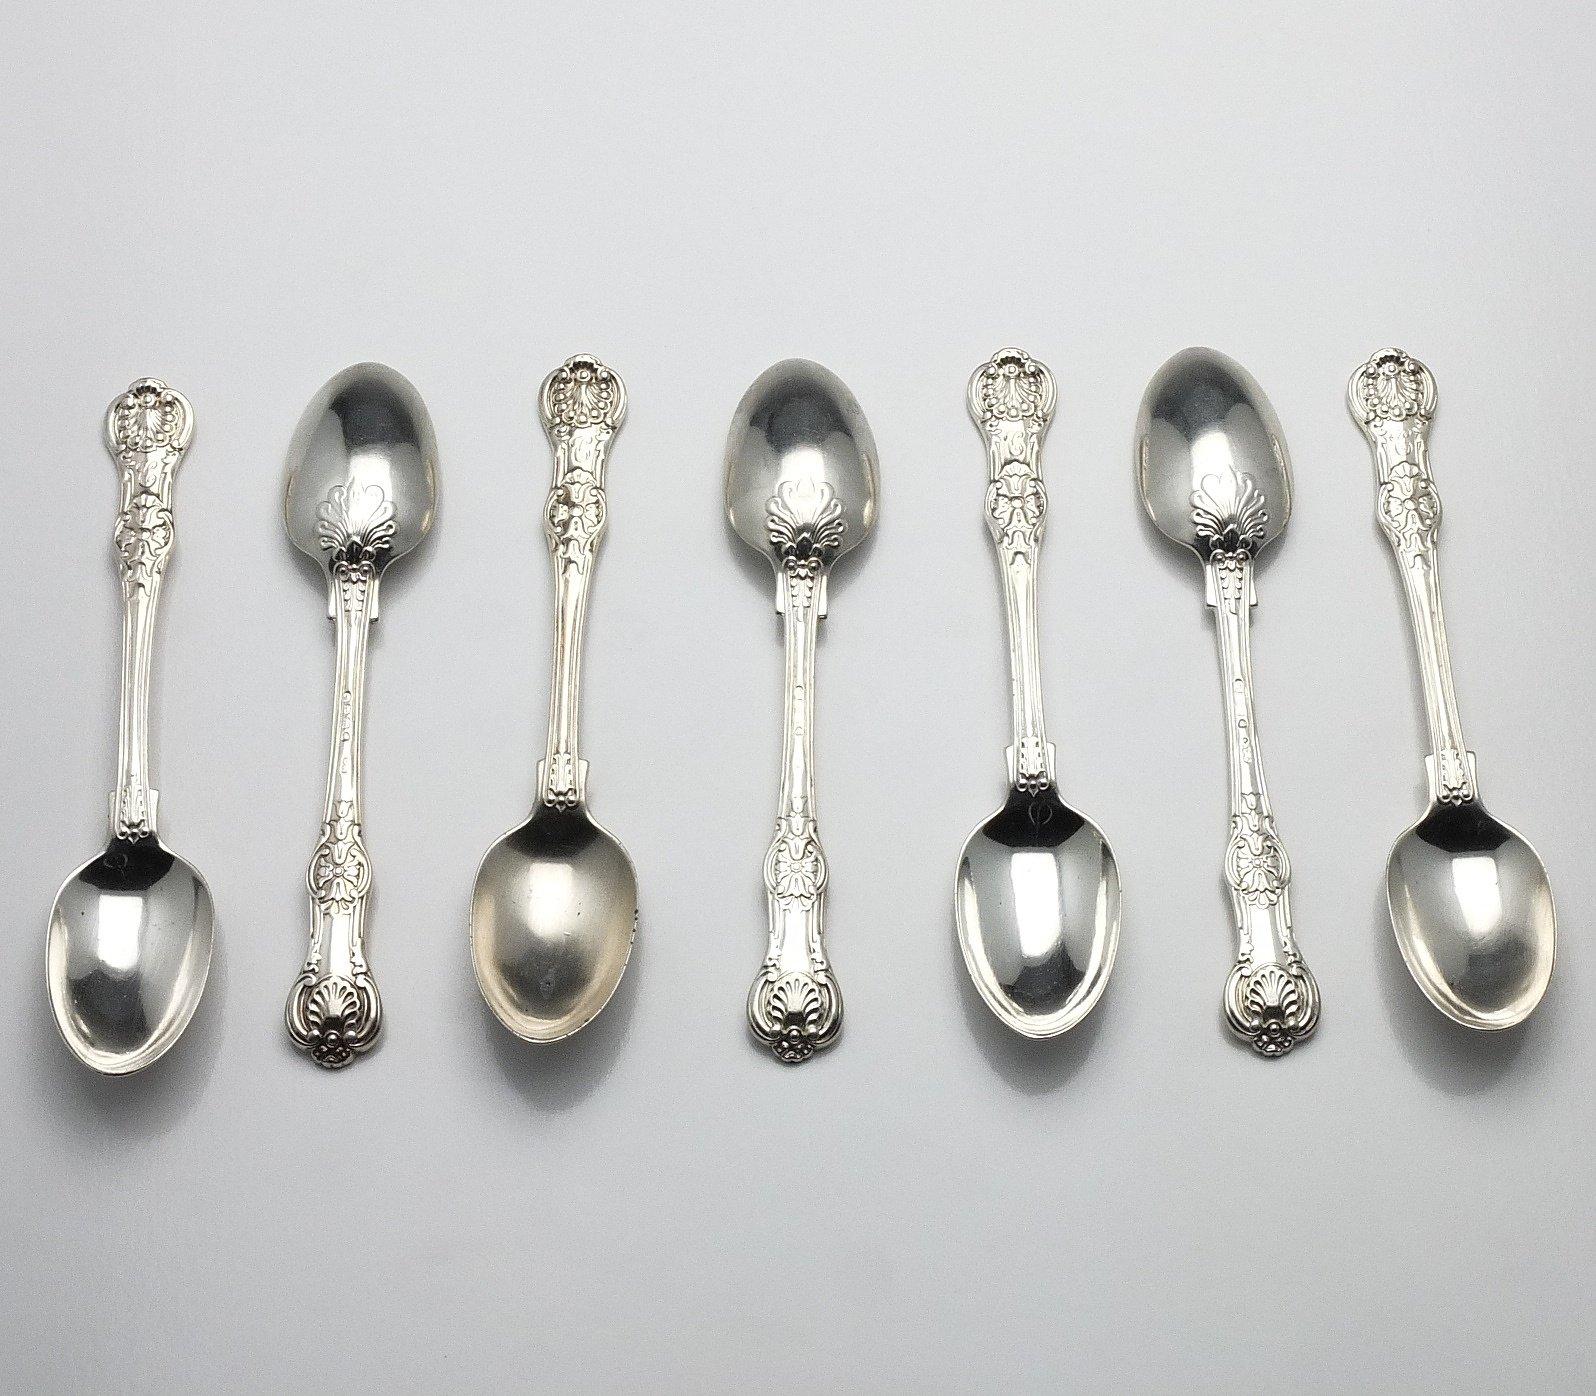 'Seven Victorian Crested Sterling Silver Kings Pattern Teaspoons Chawner & Co London 1870'